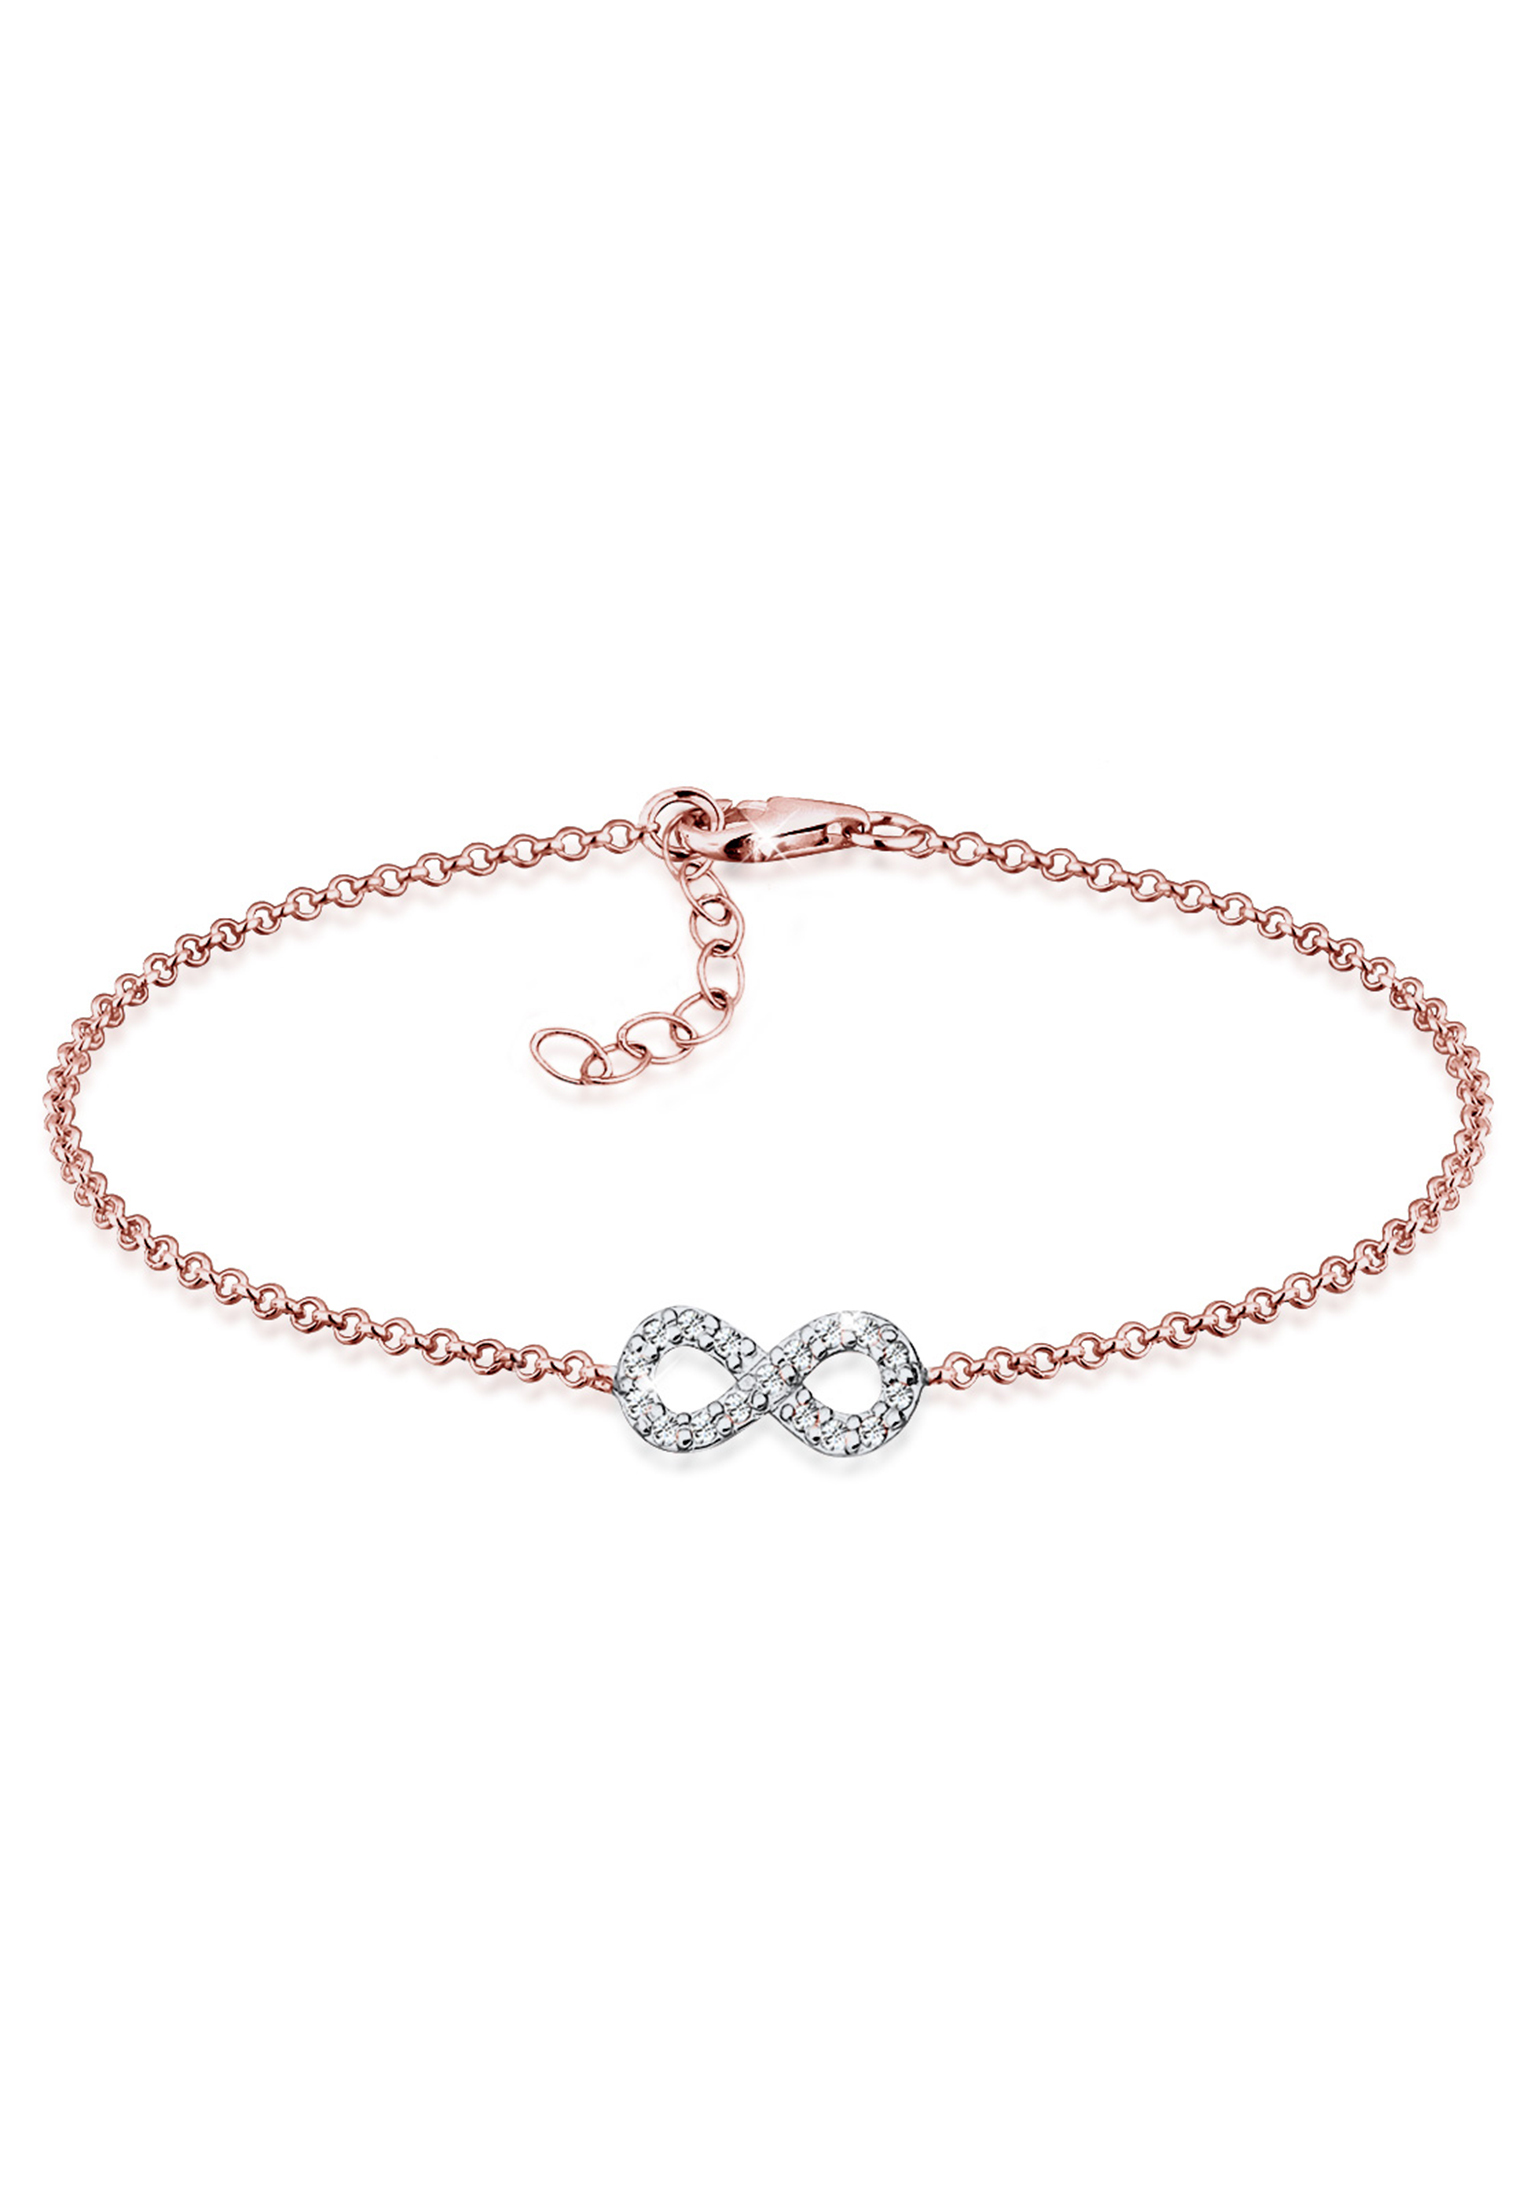 Armband Infinity | Kristall ( Weiß ) | 925 Sterling Silber Rosegold